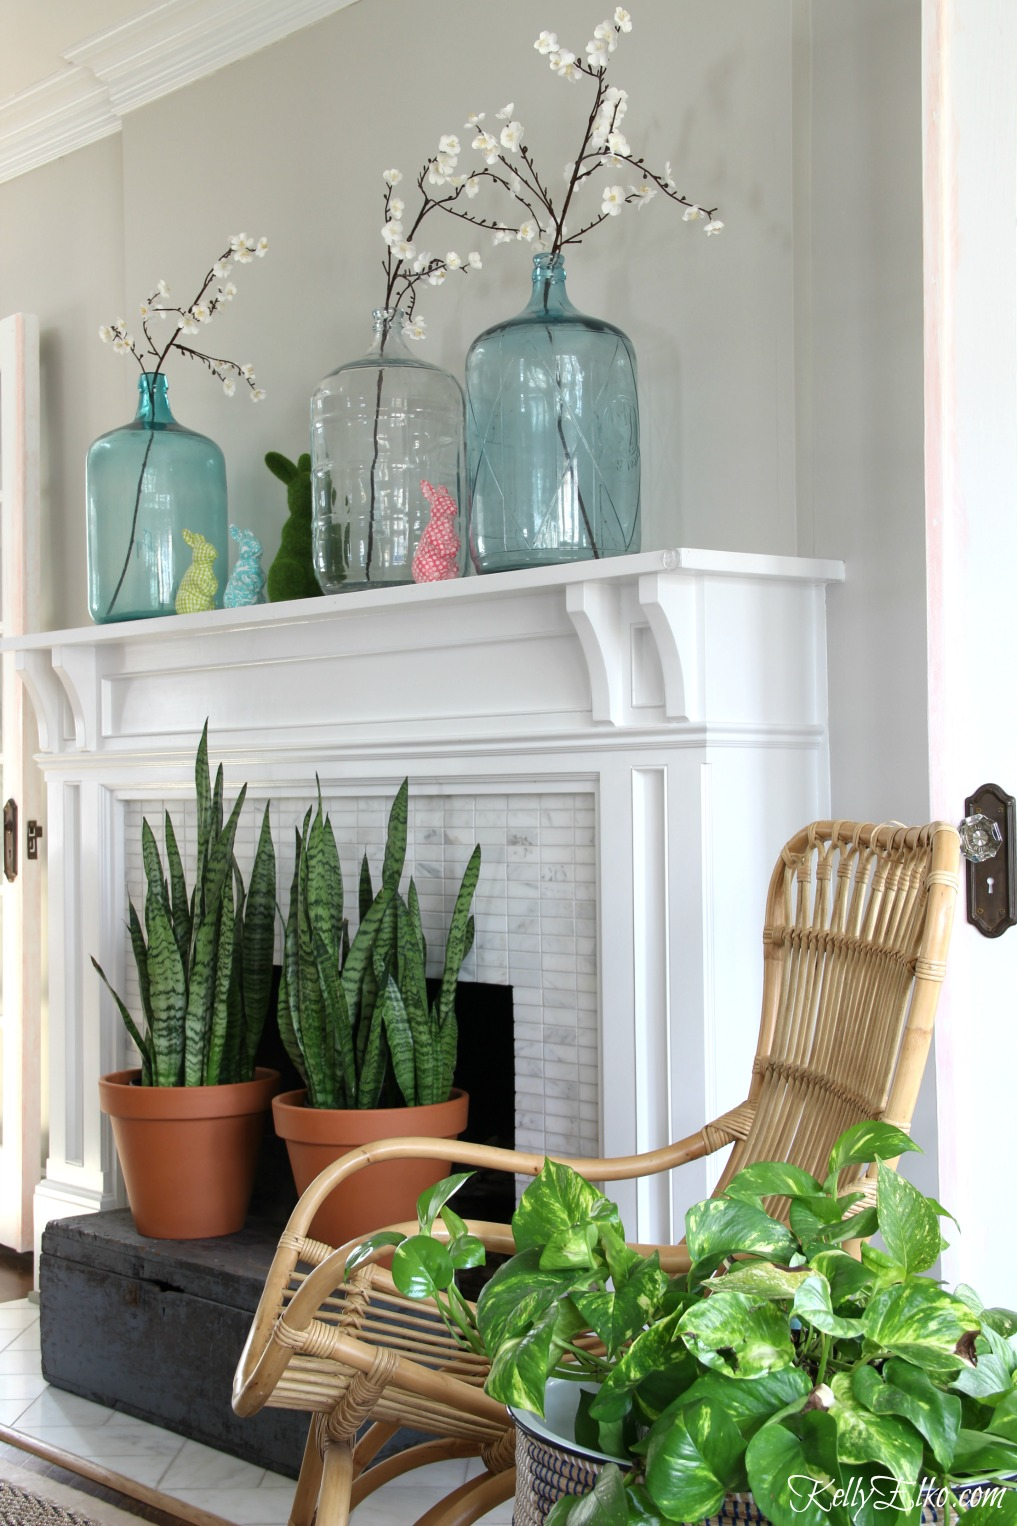 Creative Ideas to Decorate a Fireplace Opening kellyelko.com #fireplace #mantels #fireplacedecor #manteldecor #interiordecor #decorate #spring #springdecor #springmantel #bohostyle